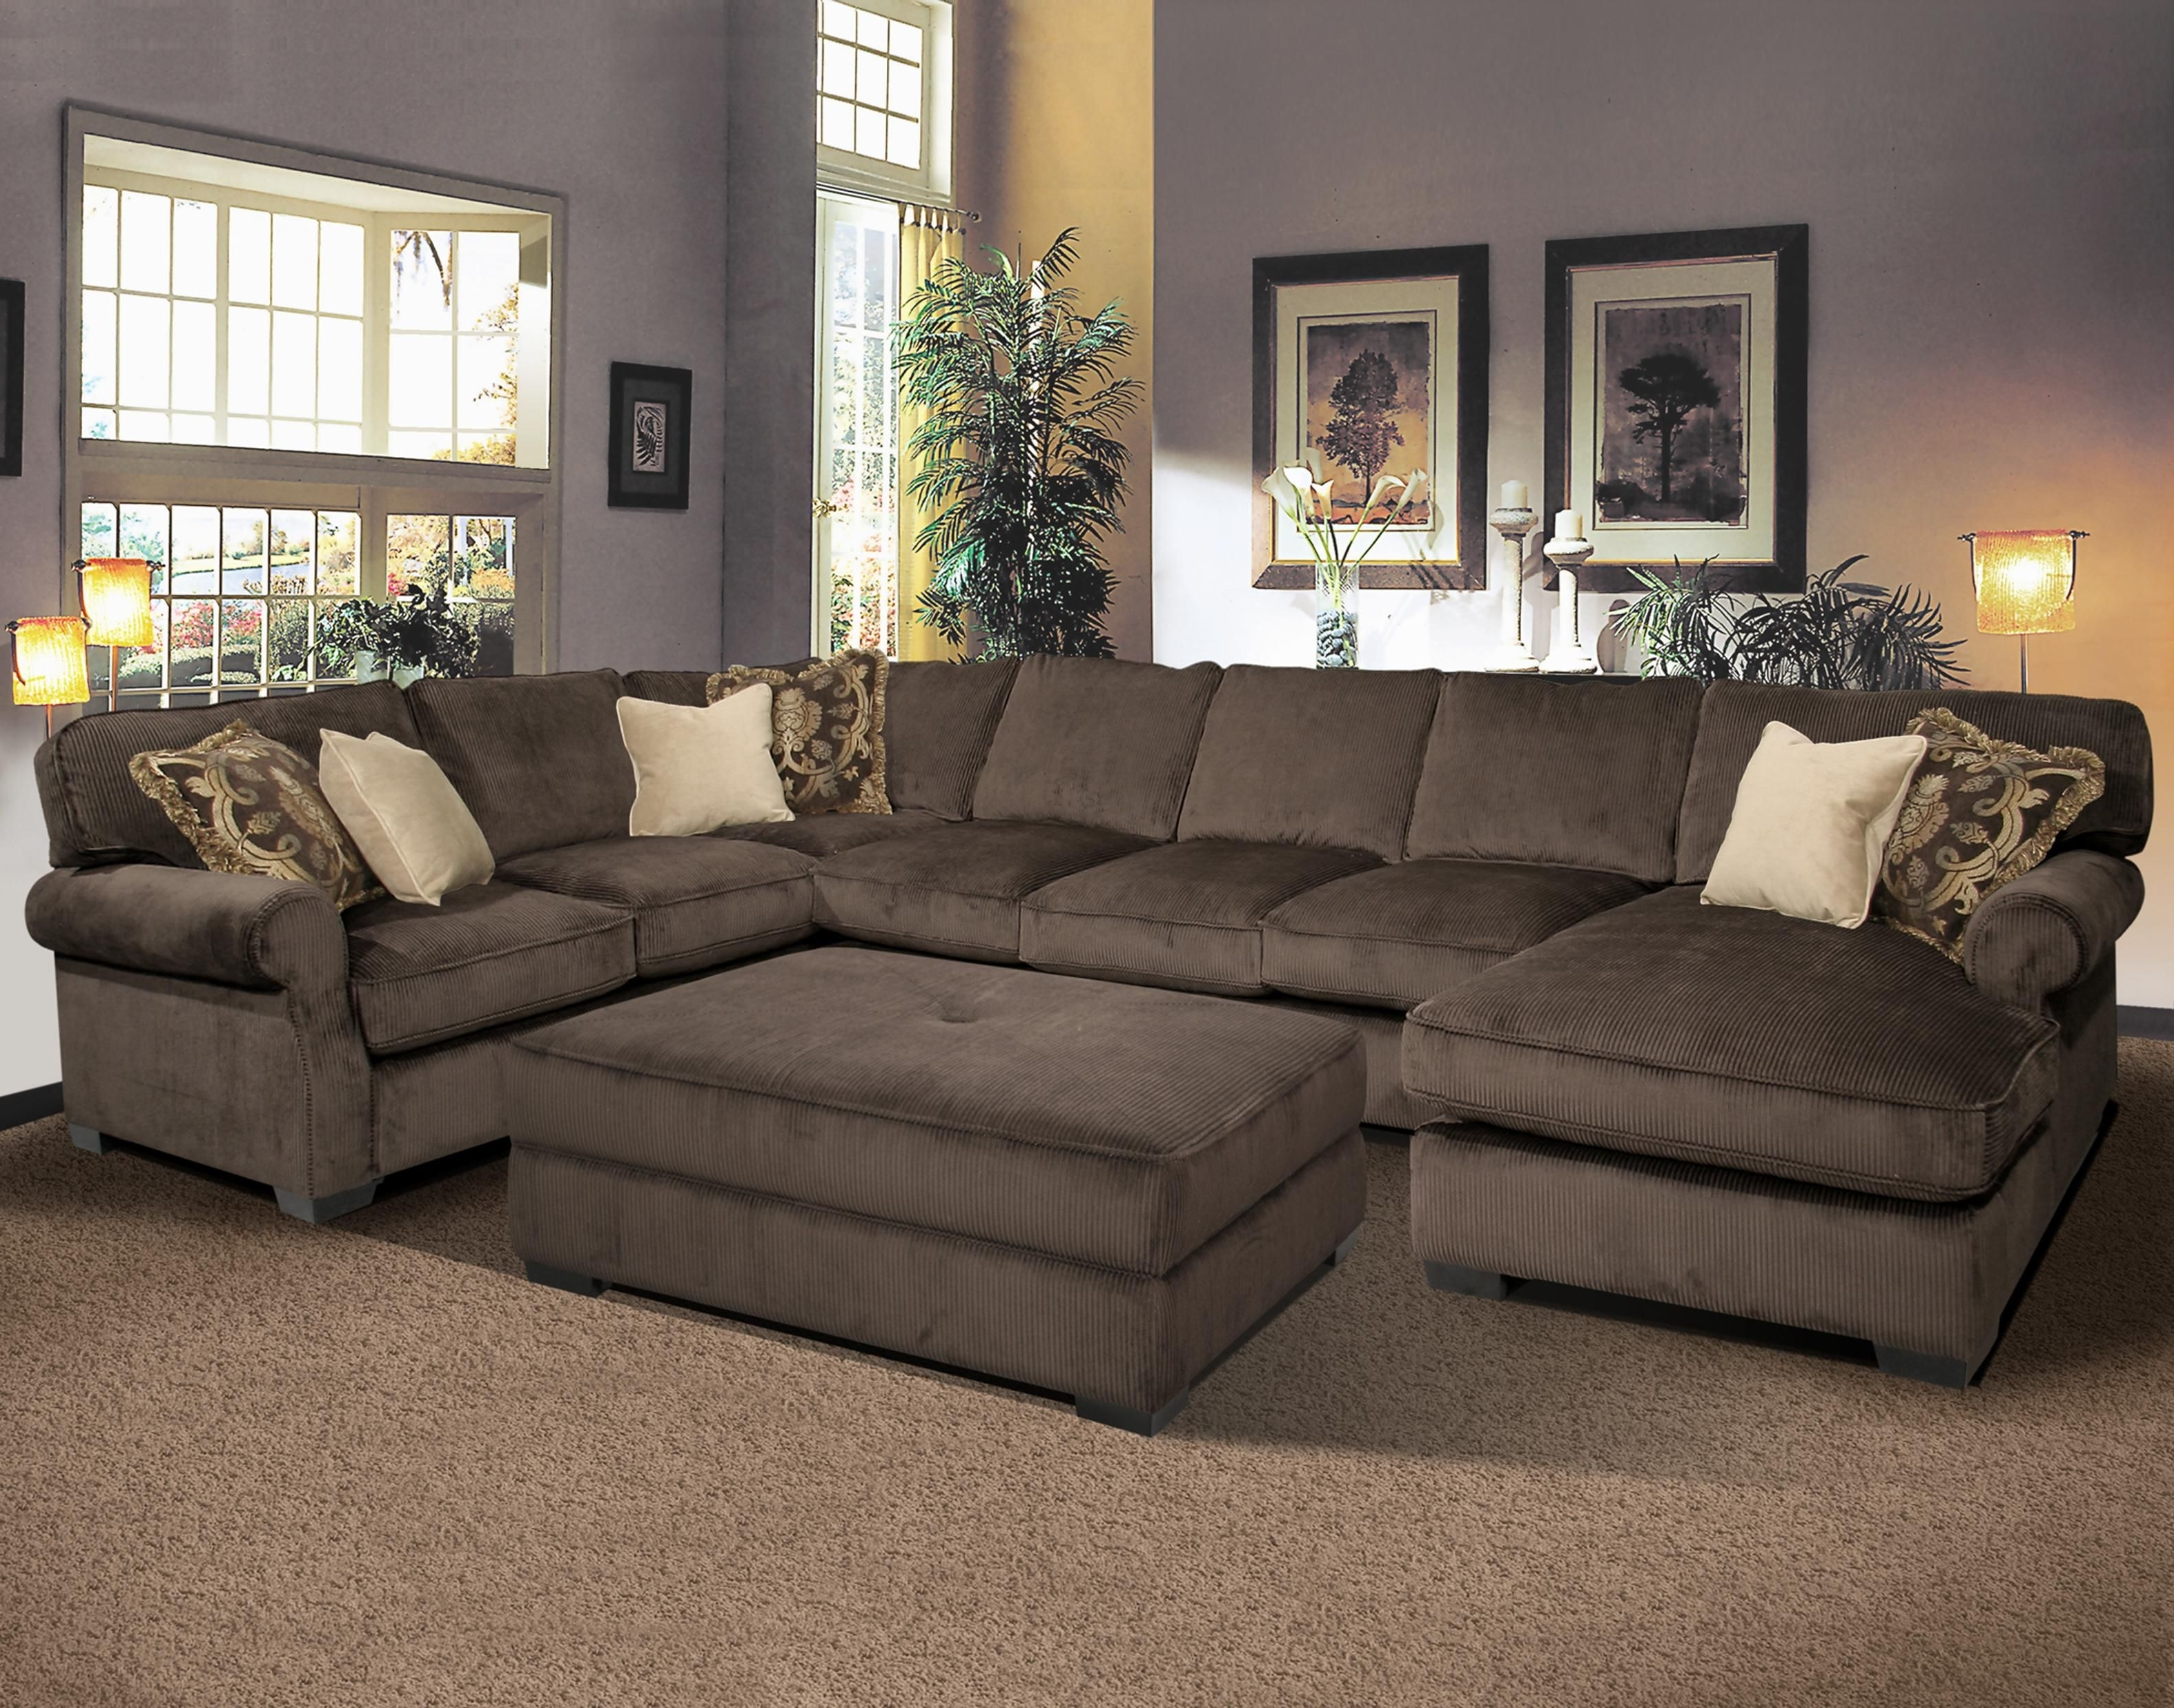 Grand Island Oversized Cocktail Ottoman For Sectional Sofa Inside Most Recent Sofas With Large Ottoman (View 2 of 15)